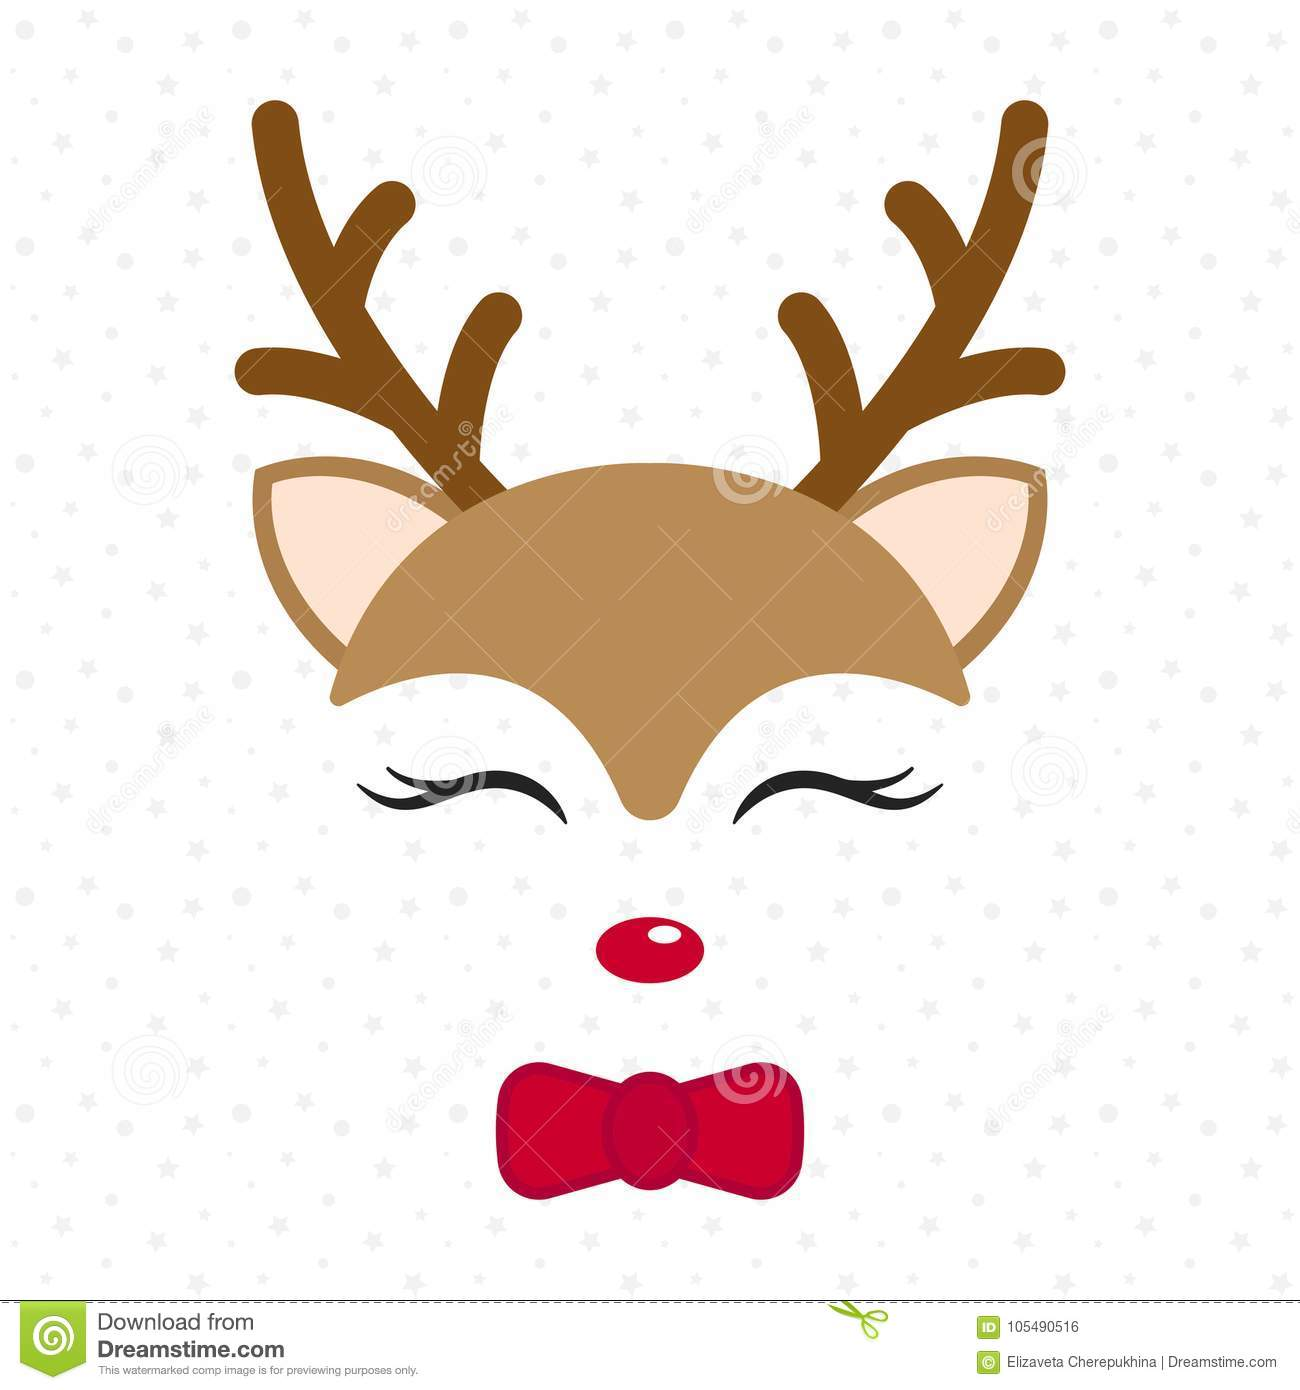 Cute Reindeer Baby Deer Merry Christmas Cartoon Character Boy With Bow Tie Stock Vector Illustration Of Celebration Brown 105490516